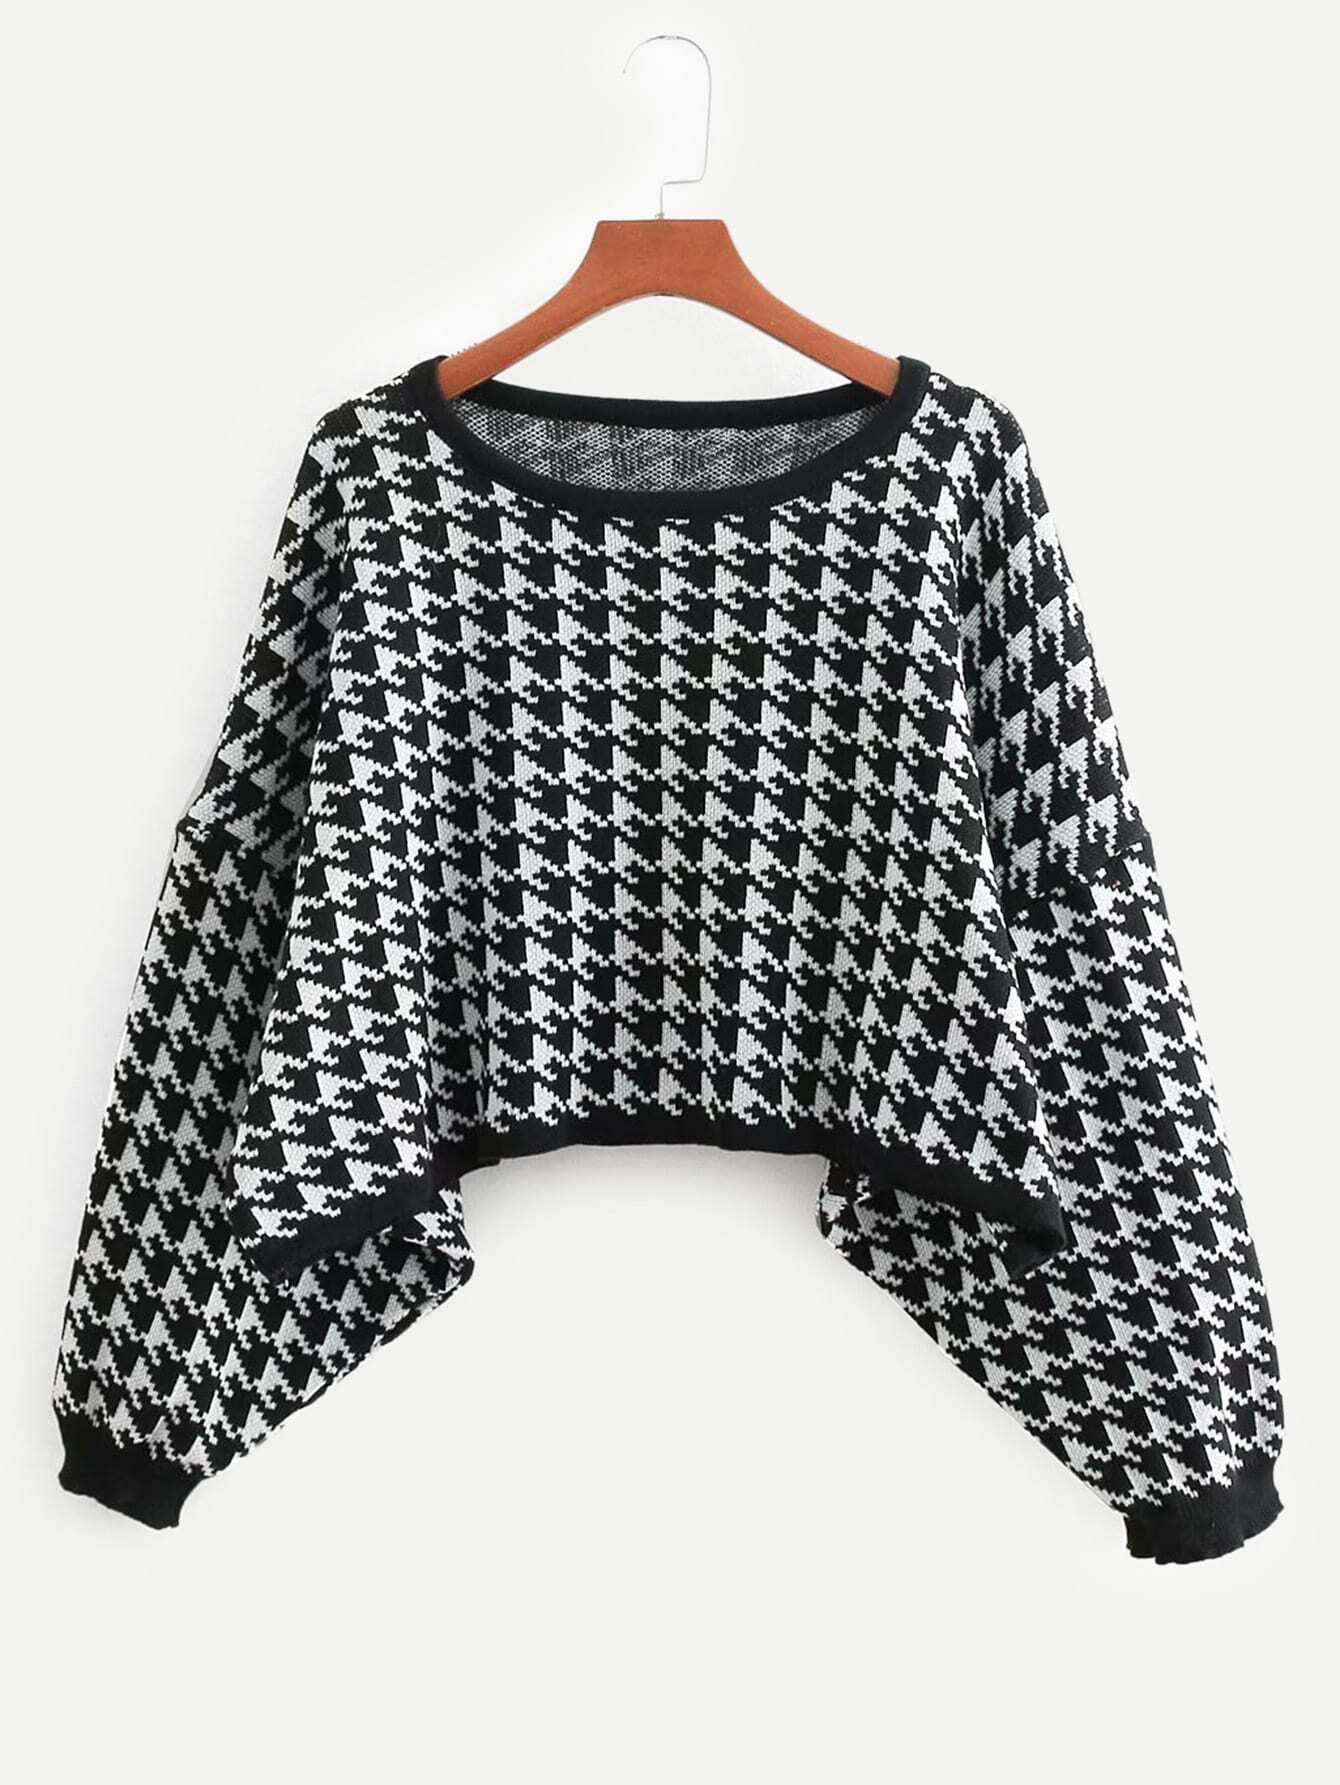 Batwing Sleeve Houndstooth Jumper Batwing Sleeve Houndstooth Jumper